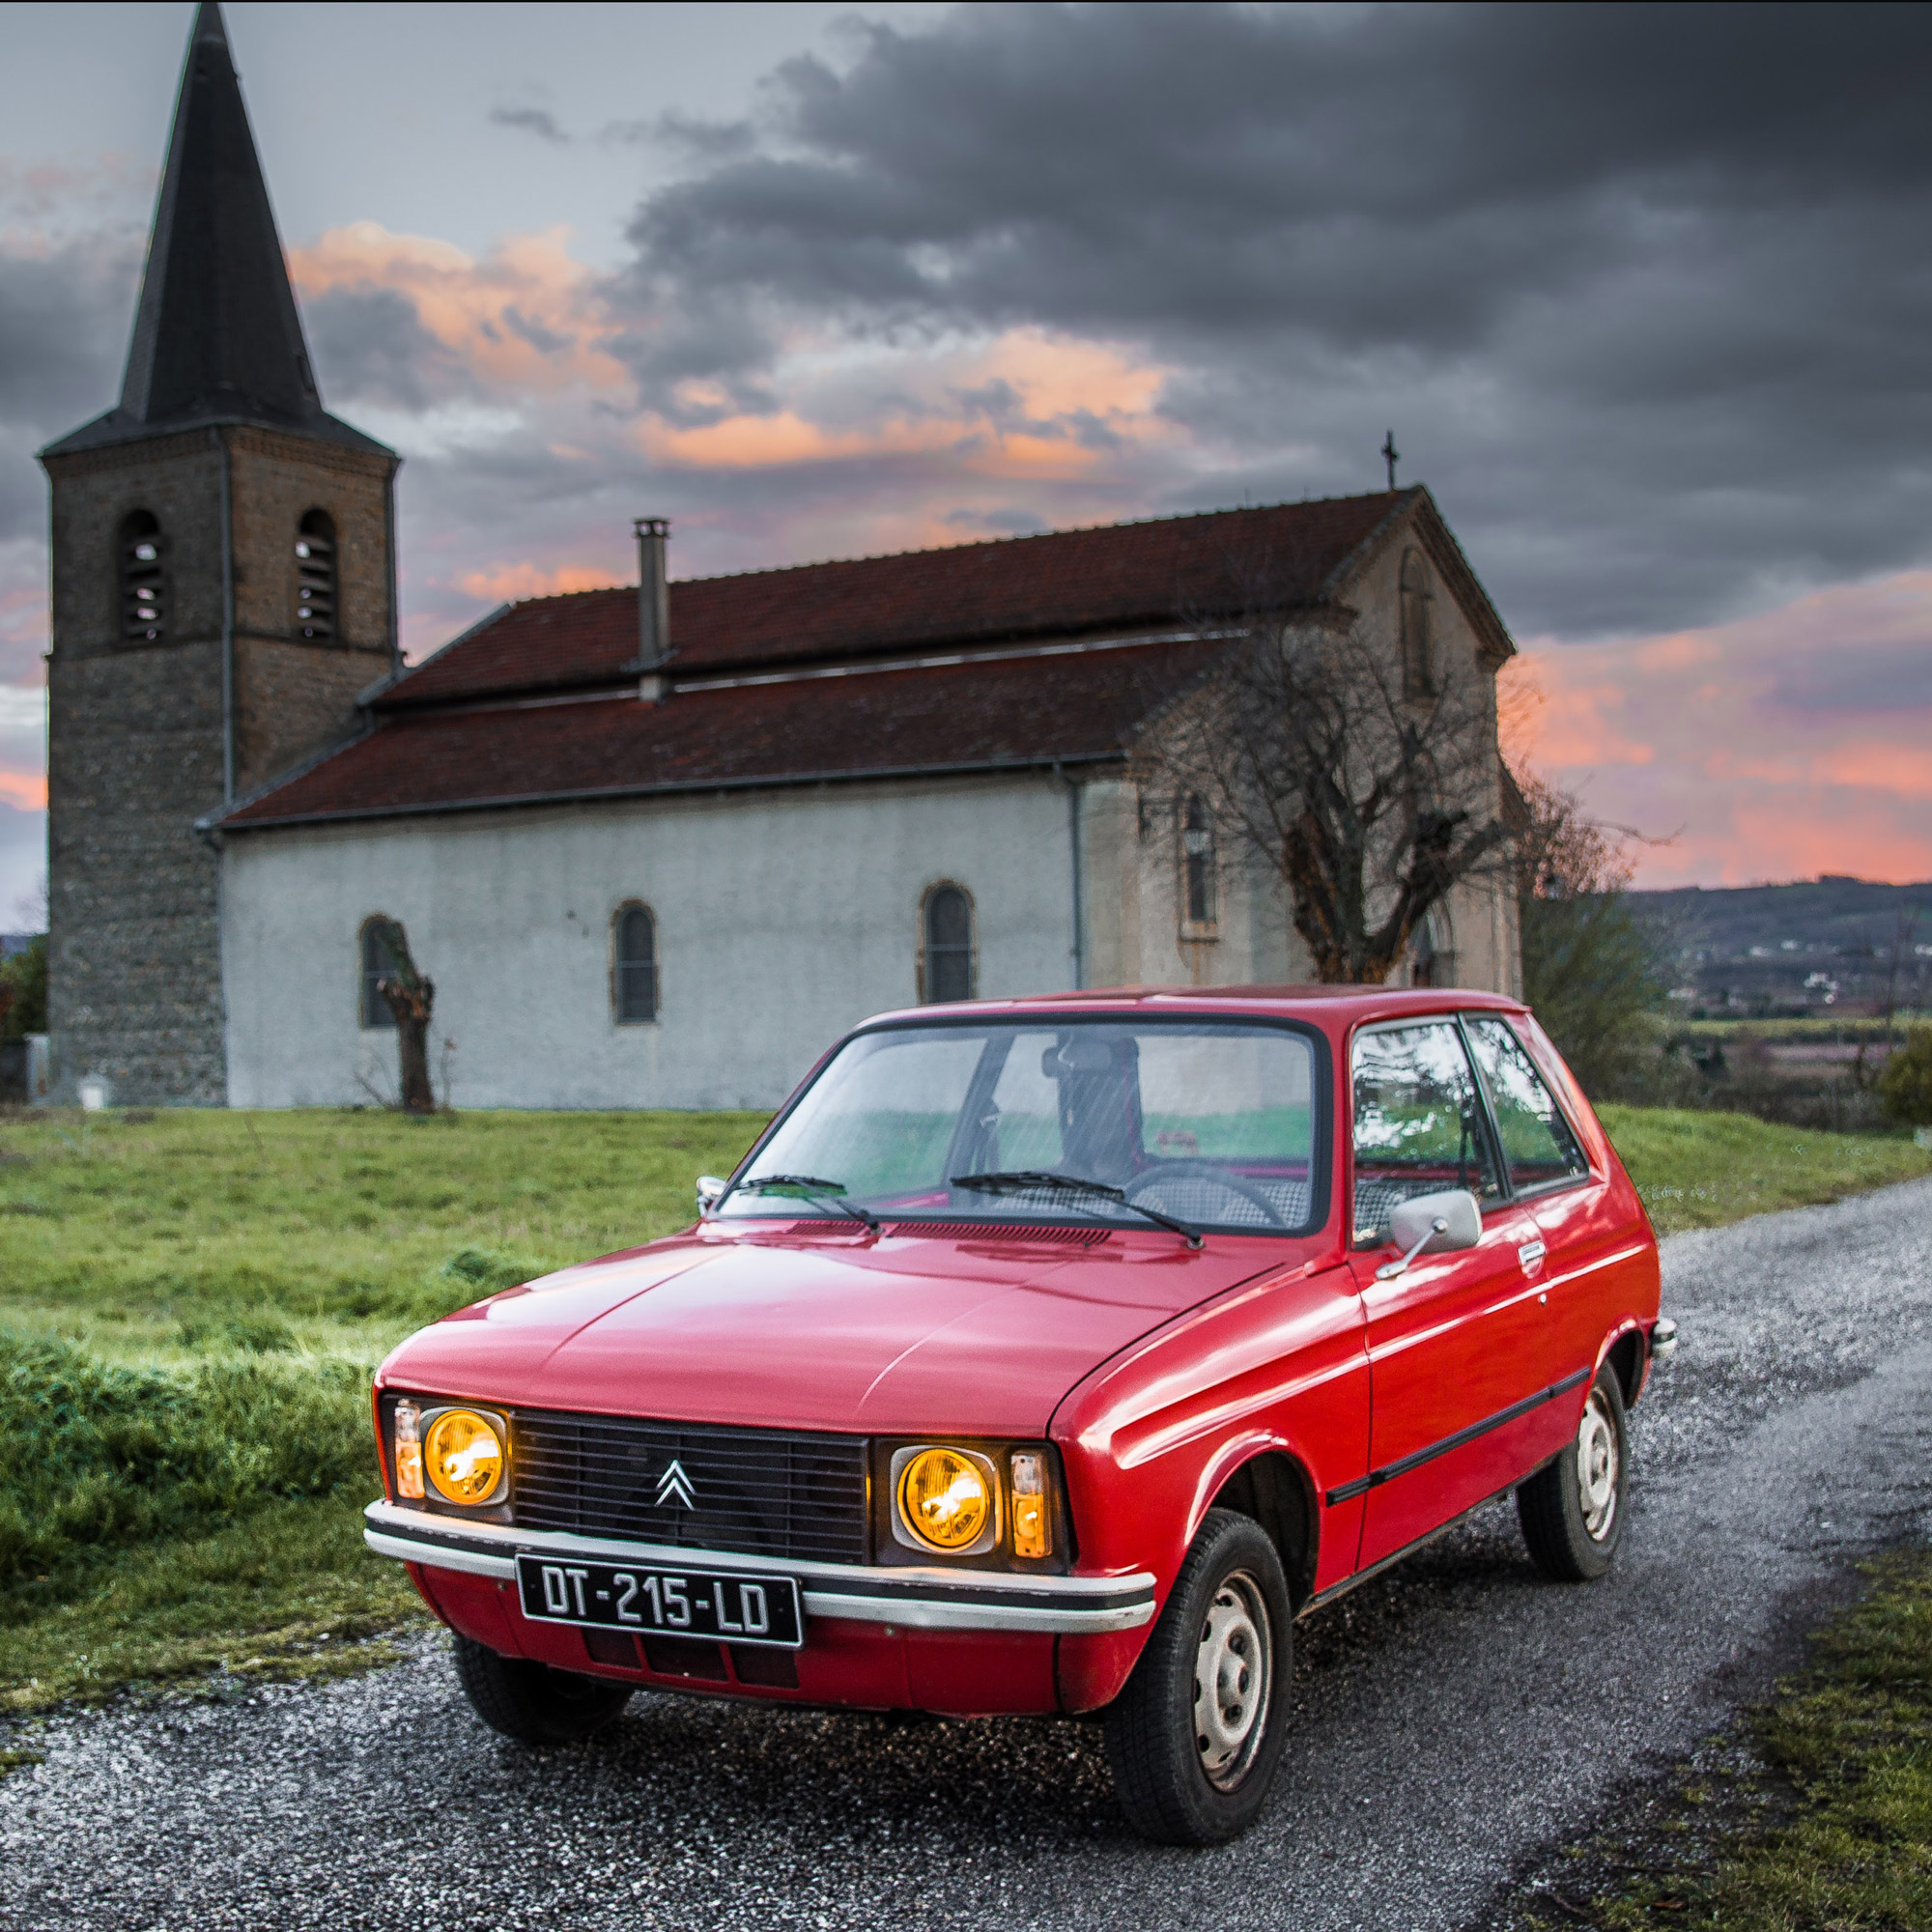 This Citroën Proves That Endangered Classics Are Most Often Normal Cars